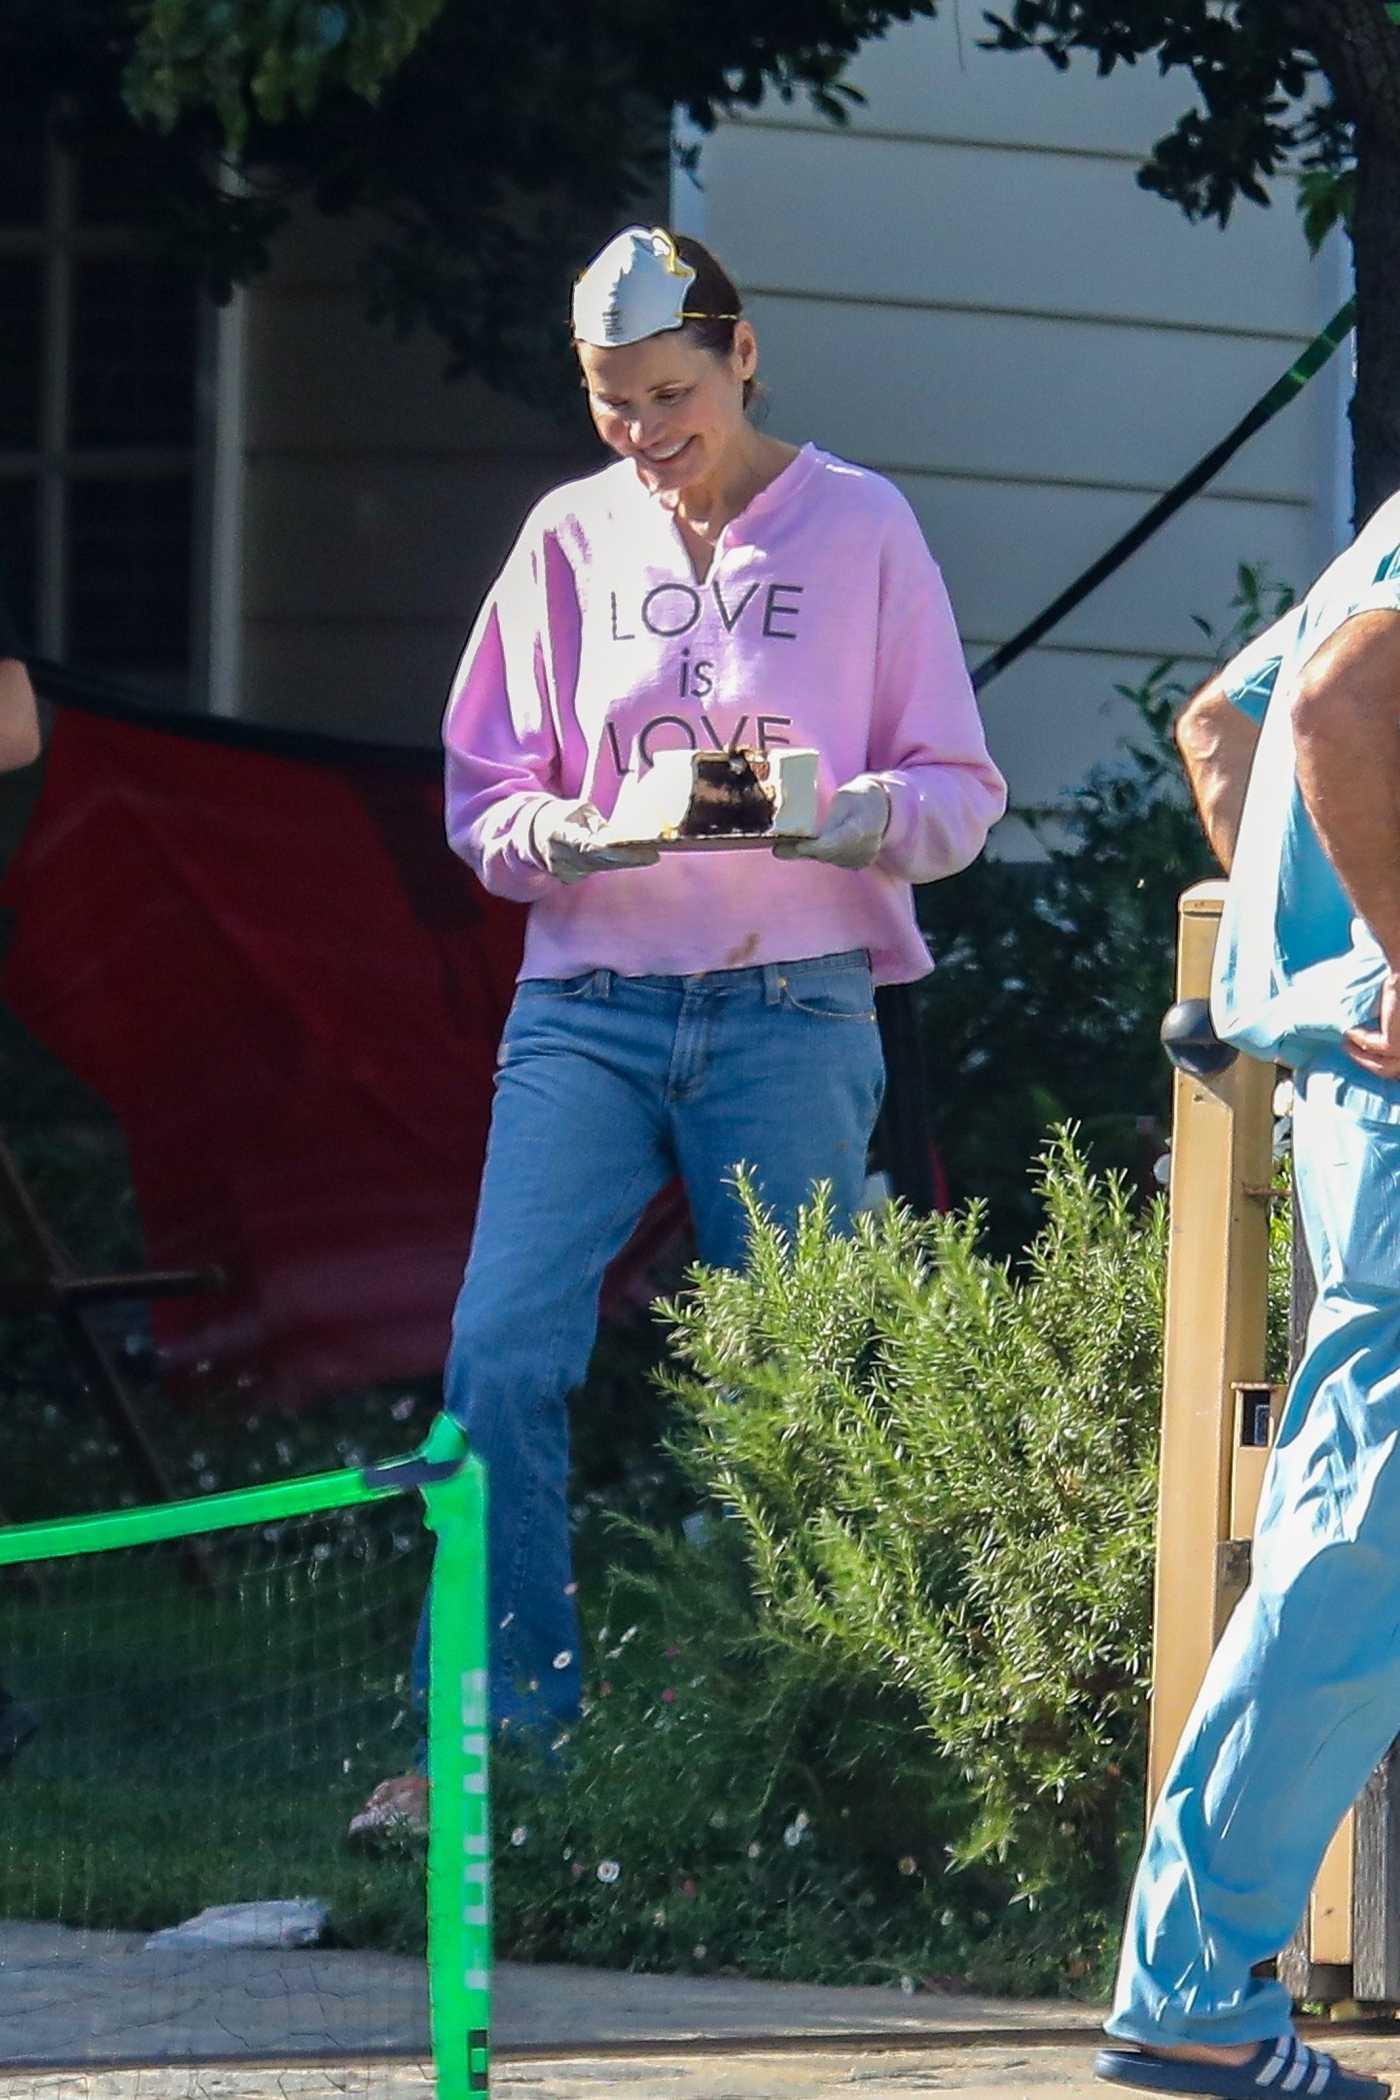 Geena Davis Enjoys Cake in the Front Yard of Her Home in Pacific Palisades 05/06/2020